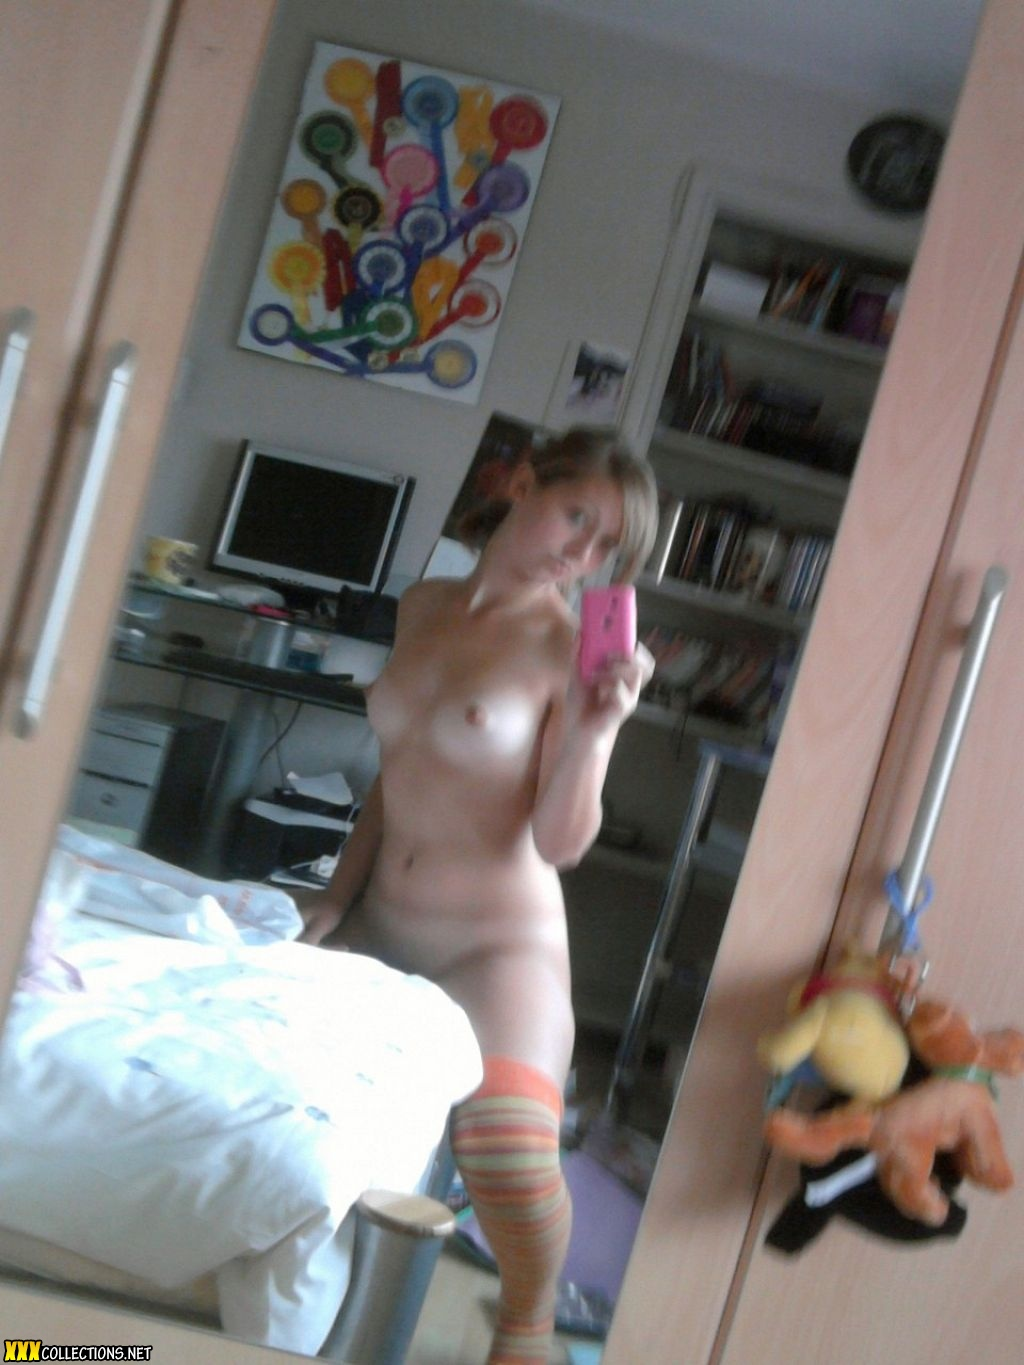 amateur cell phone pictures nude